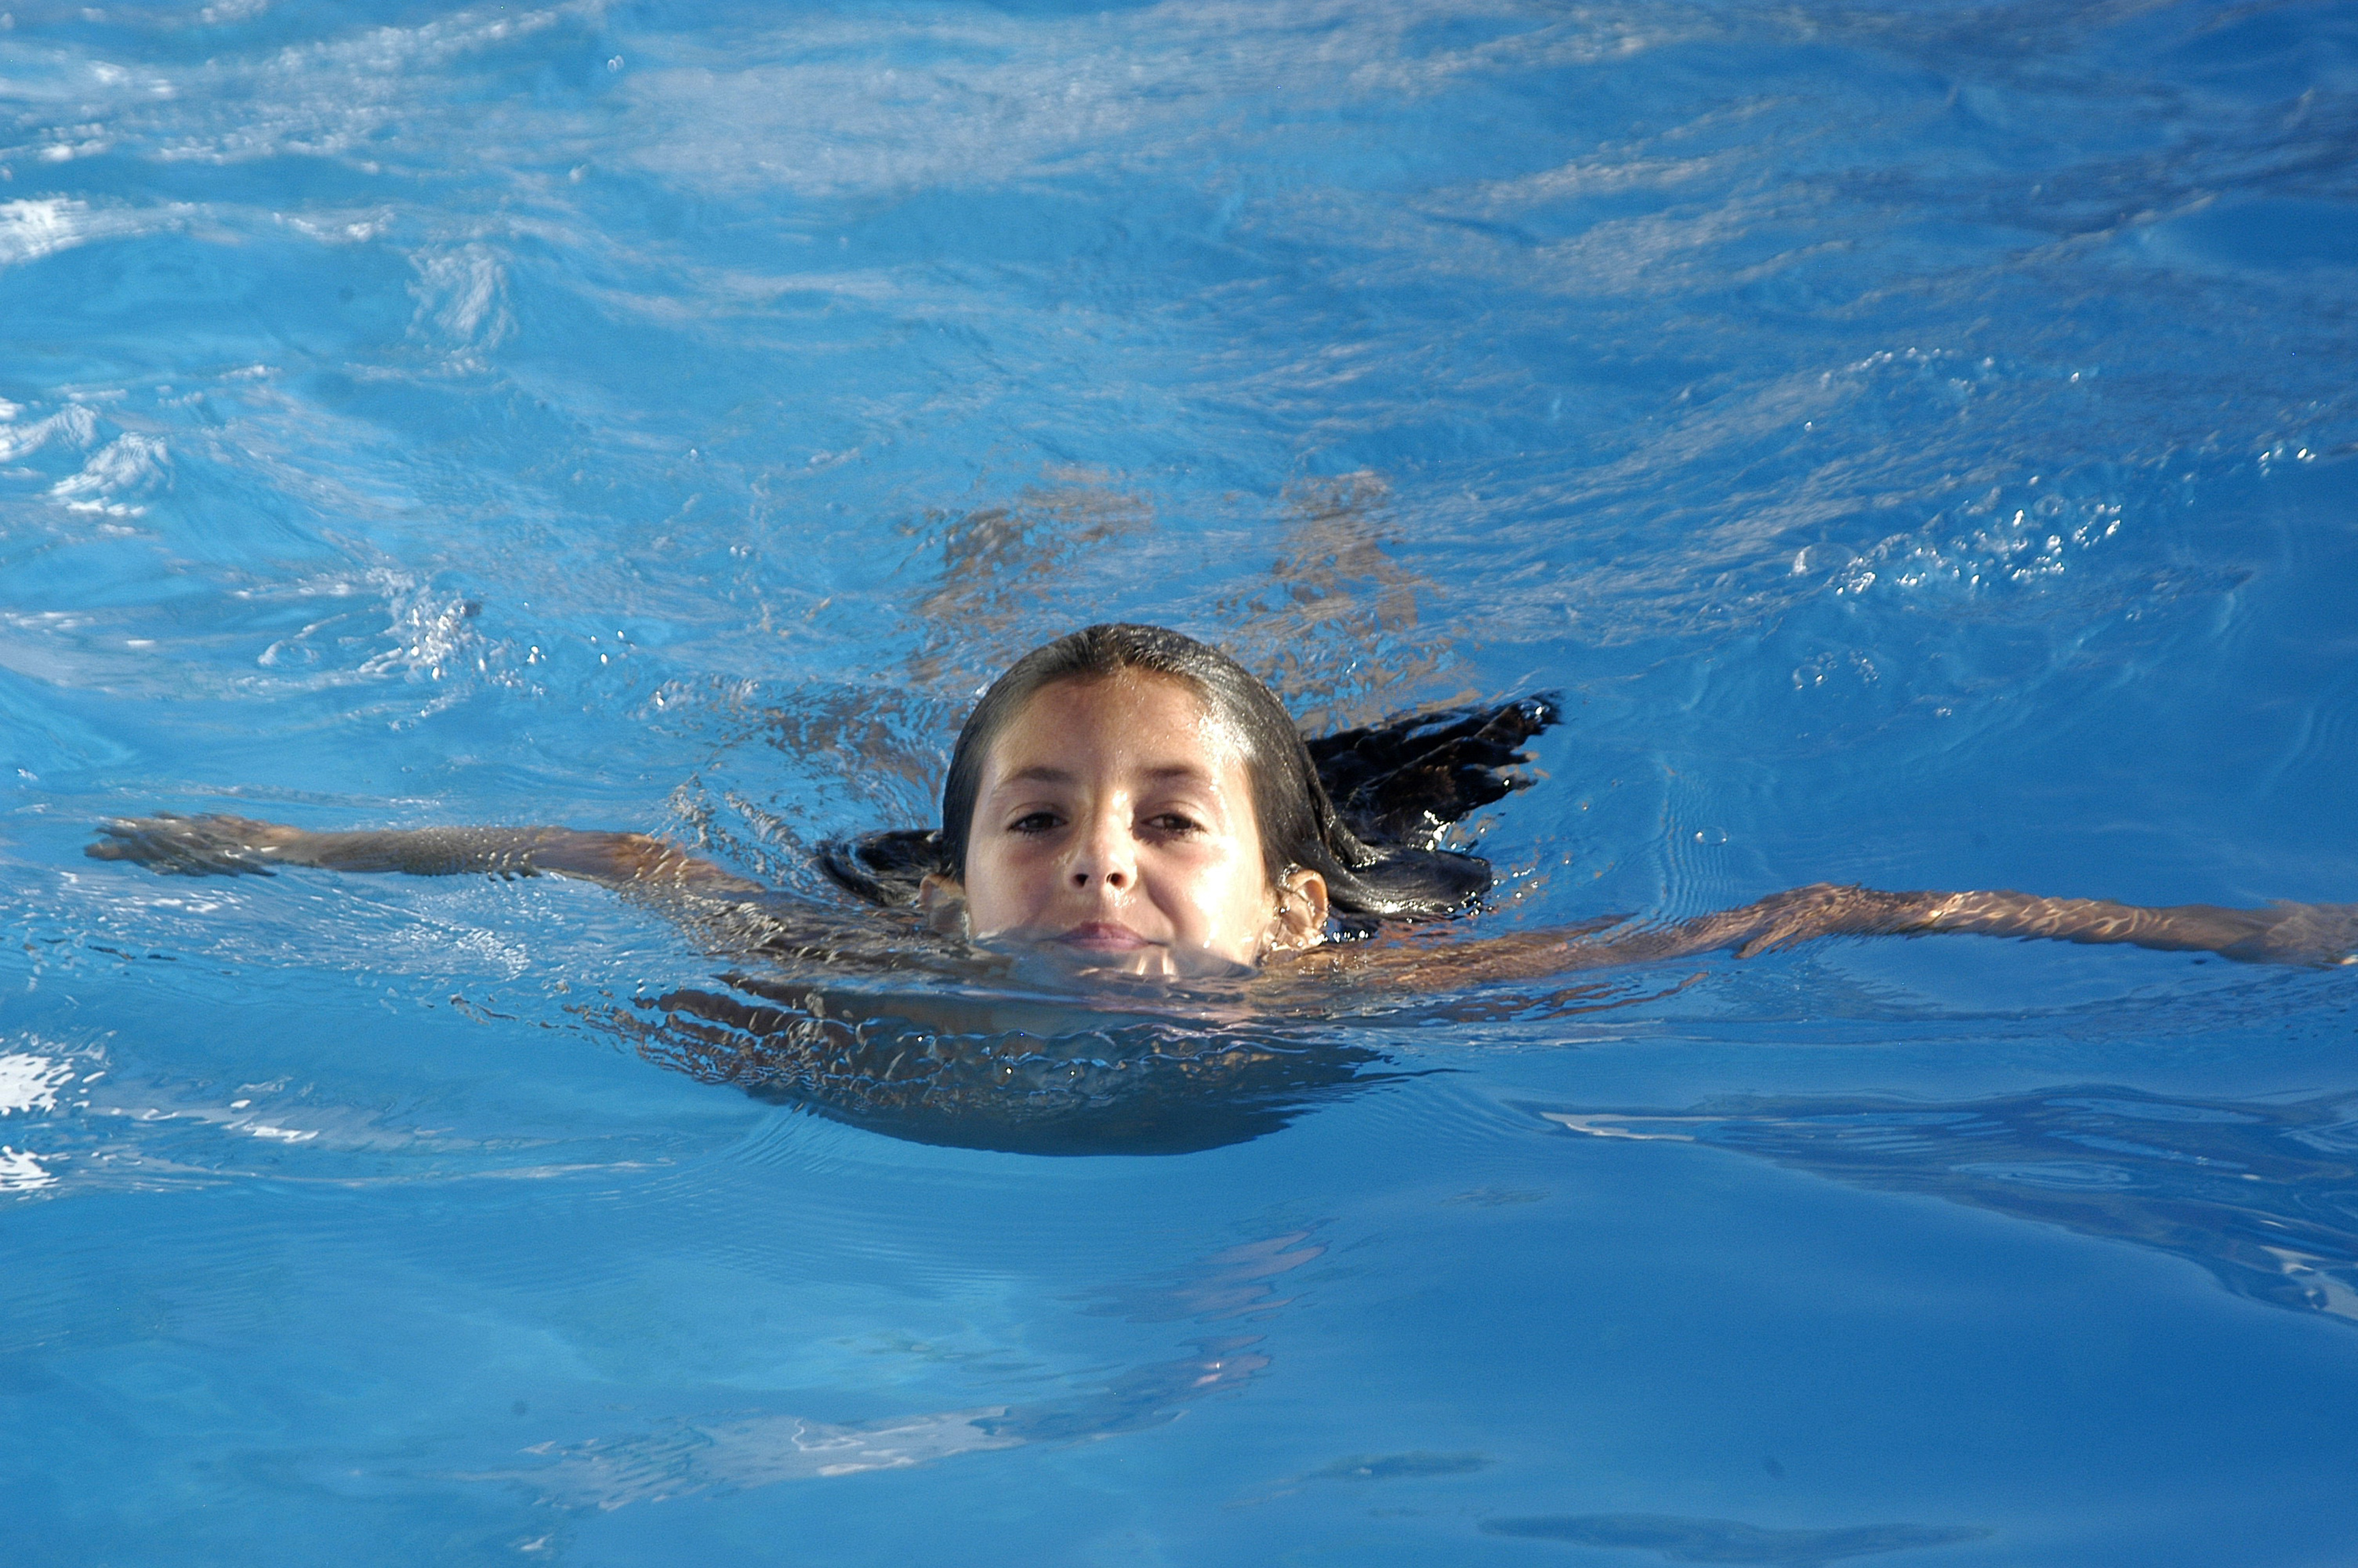 Pool safety and the role of pool builders